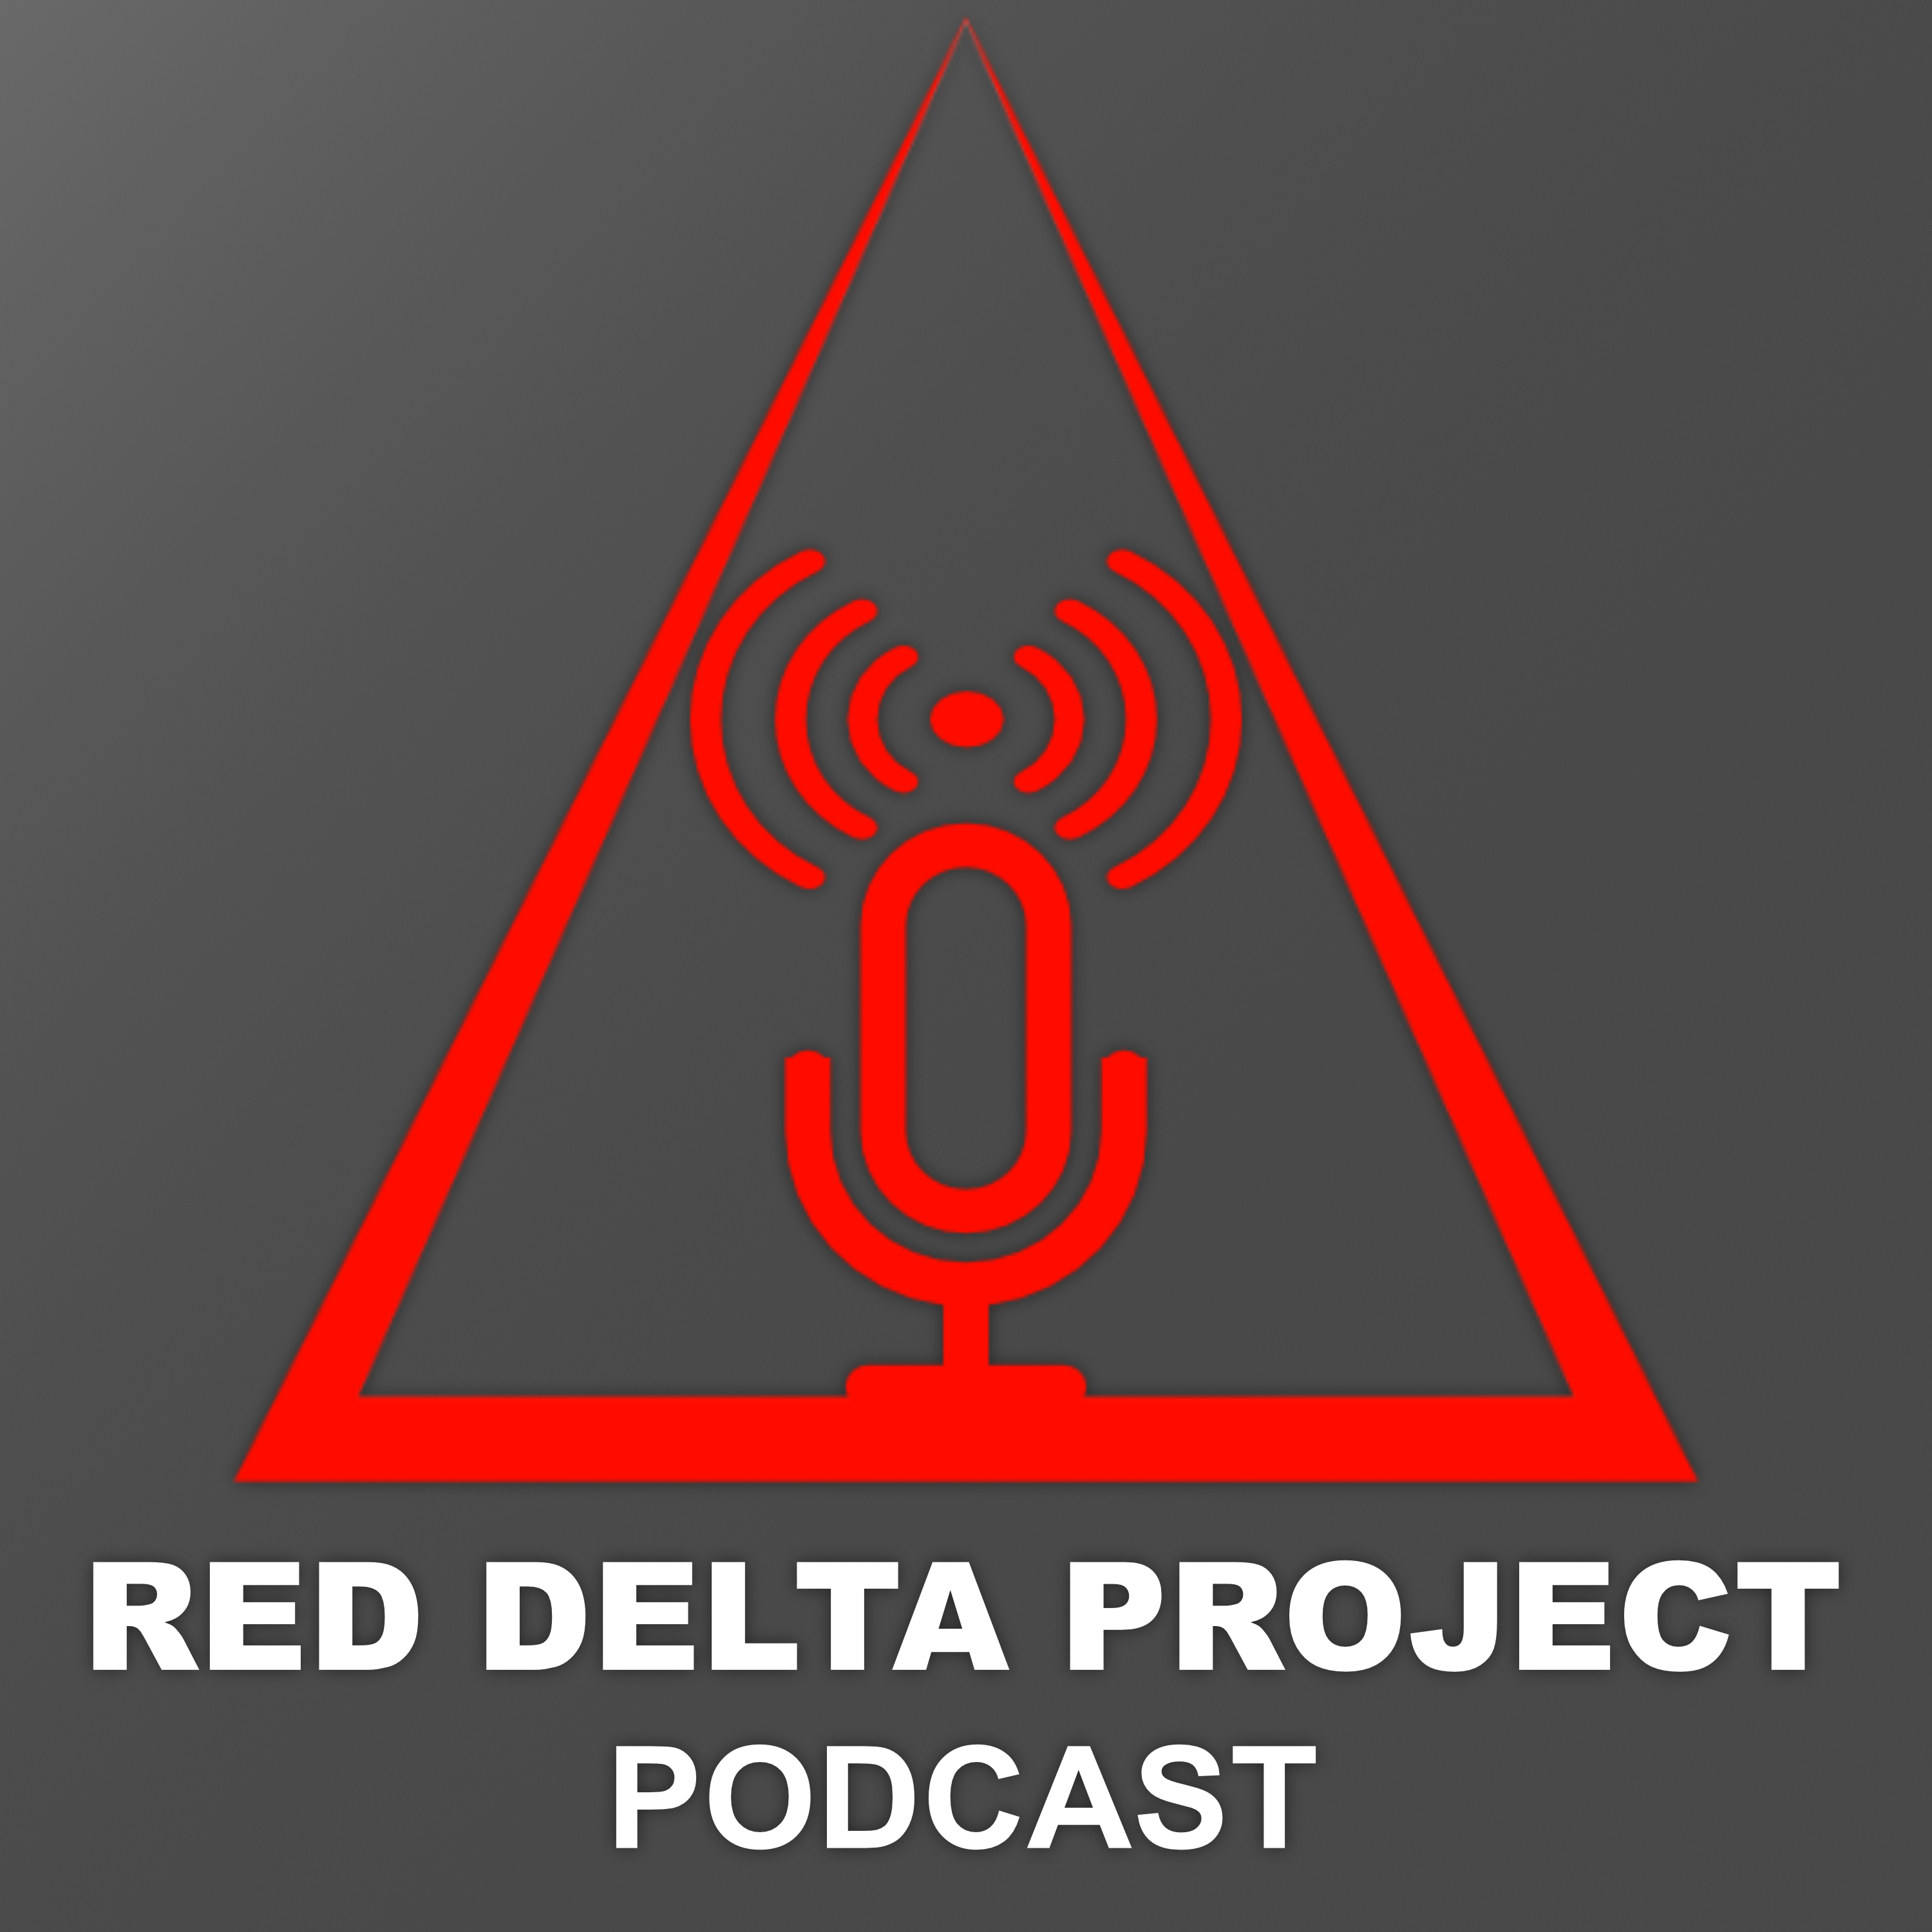 The Red Delta Project Podcast